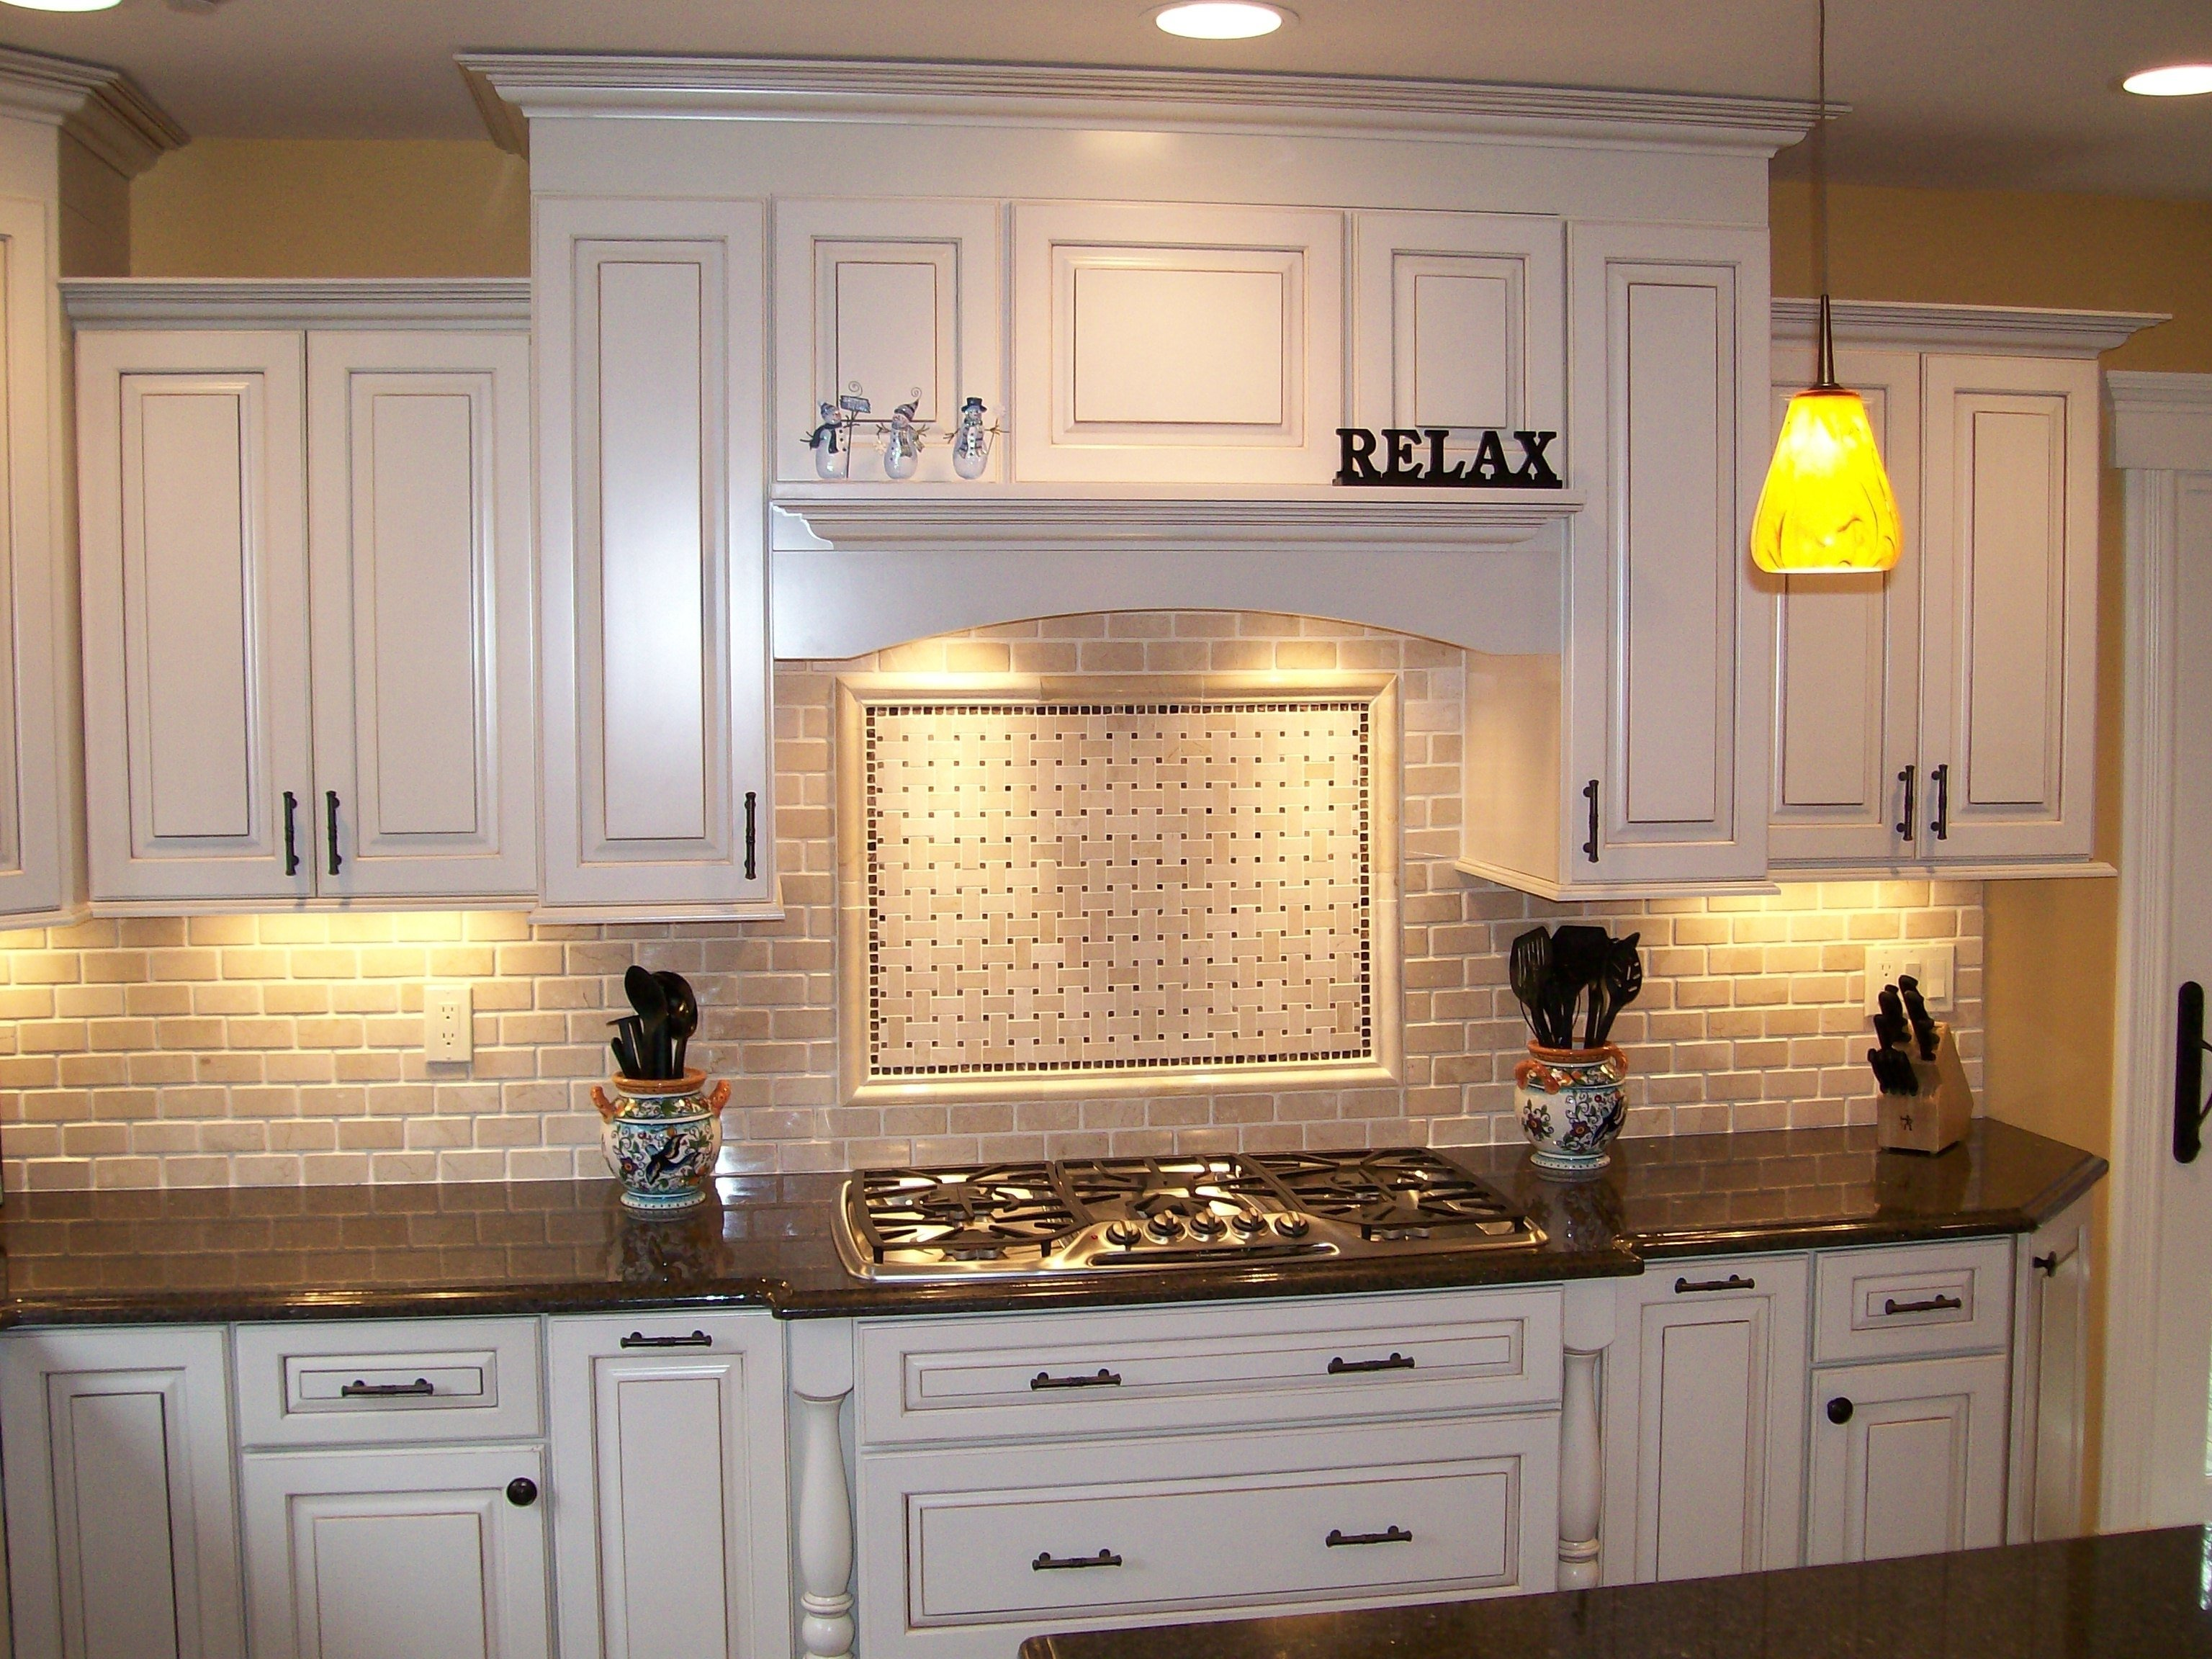 10 Unique Backsplash Ideas For White Cabinets backsplashes farmhouse backsplash ideas white cabinets brown with 2021